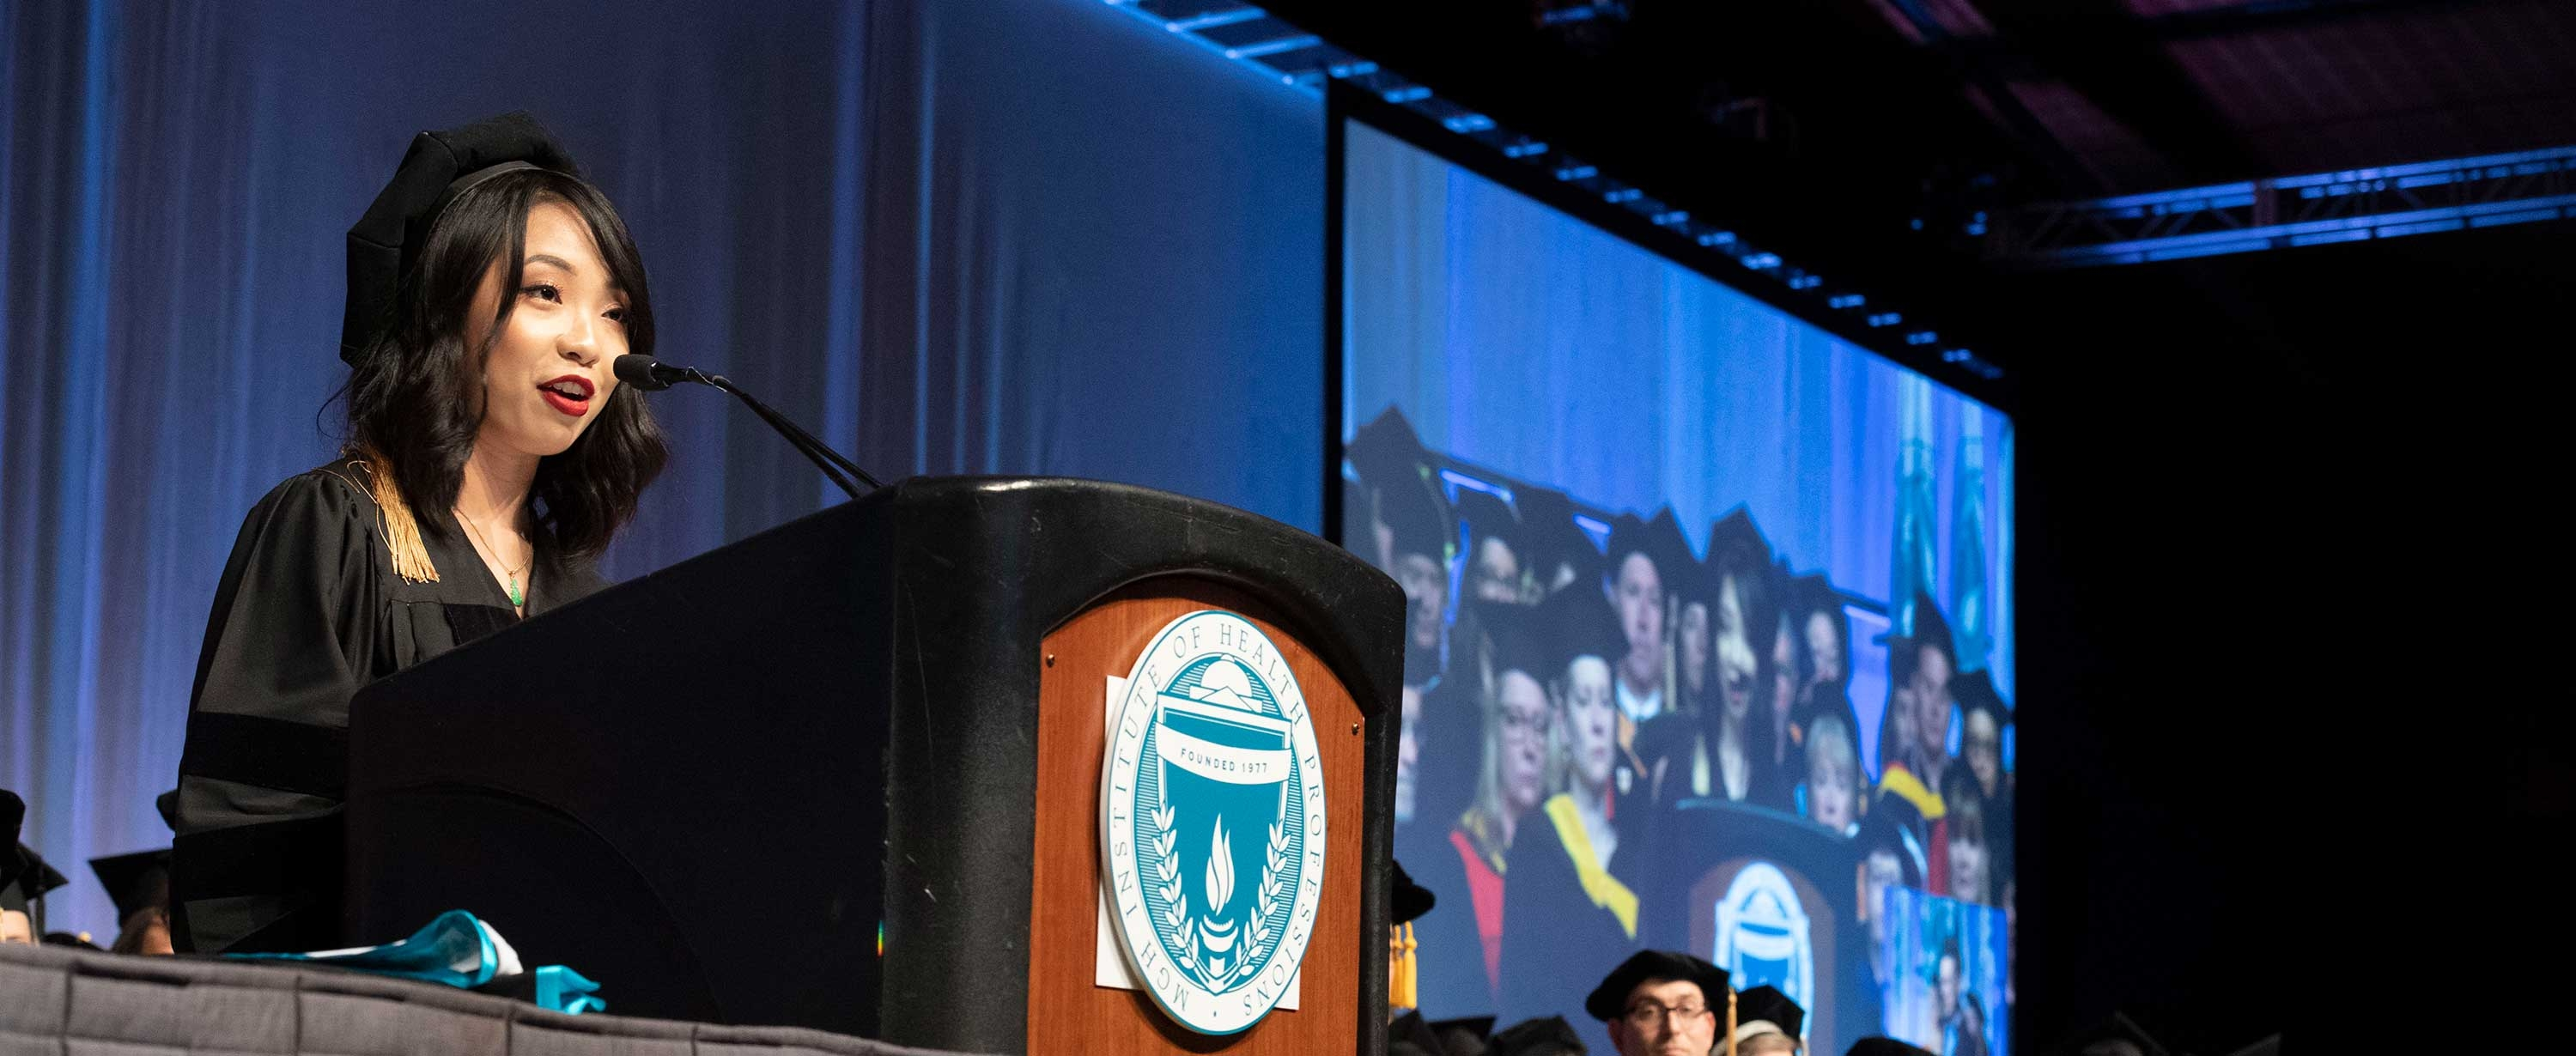 Photo of Baothy Huynh, OTD '19 speaking at 2019 Commencement